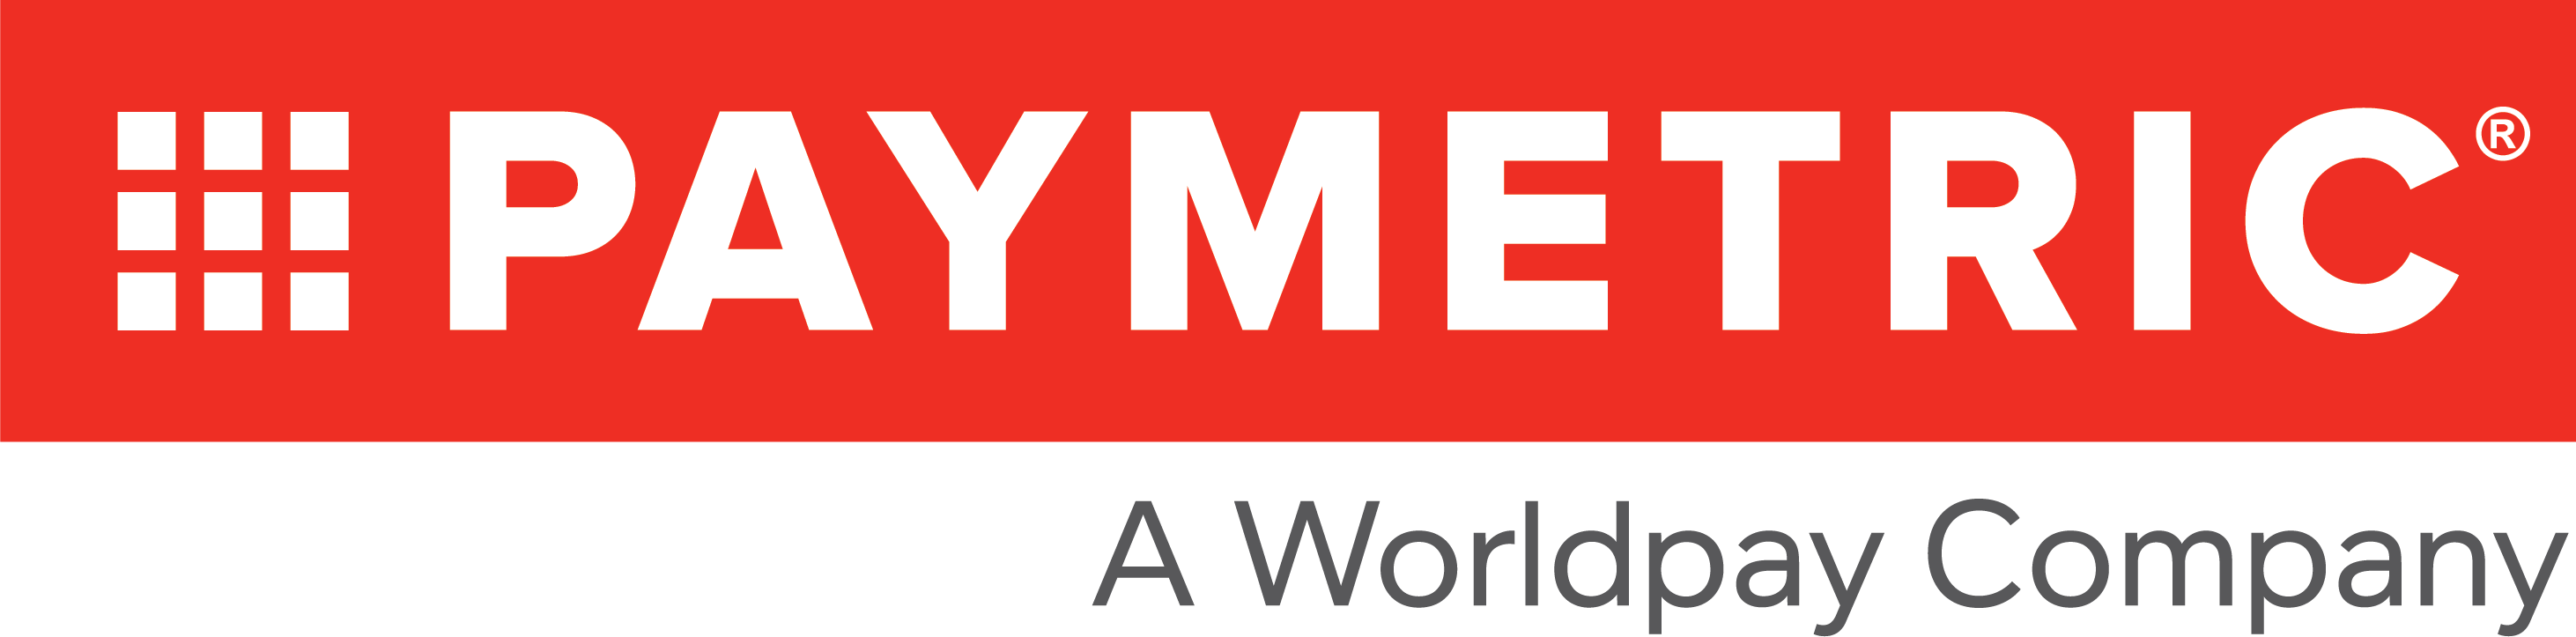 PMT-A-WorldPay-Company-Primary